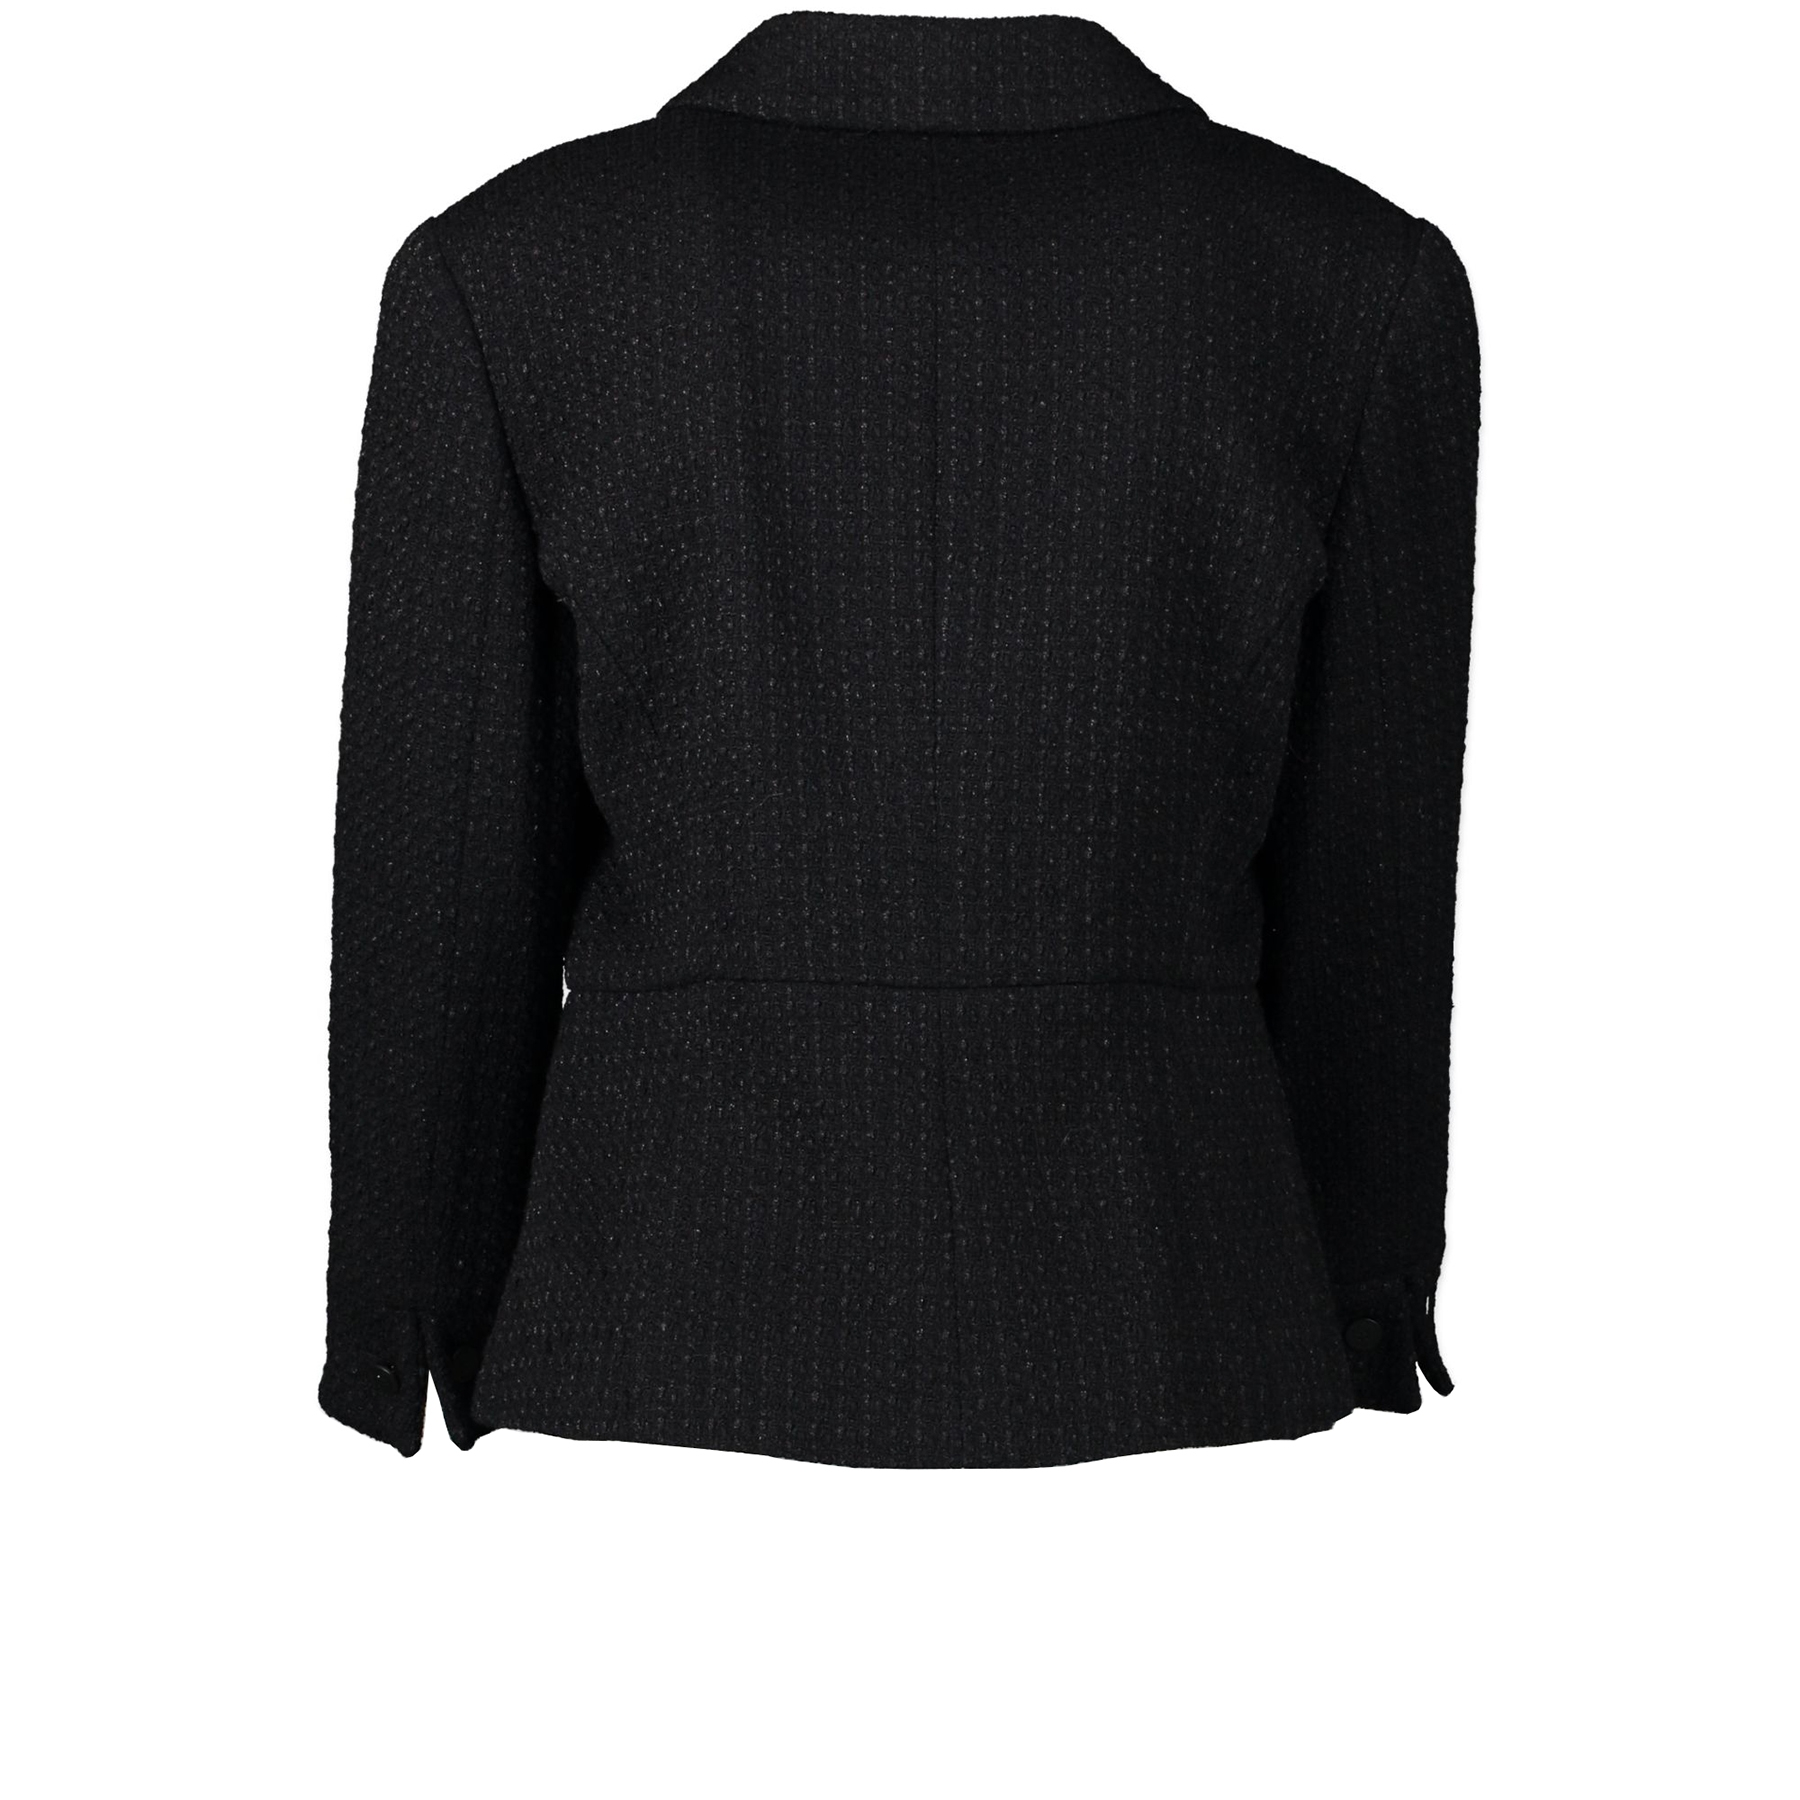 Authentic second-hand vintage Chanel Black Tweed Jacket - Size 42 buy online webshop LabelLOV